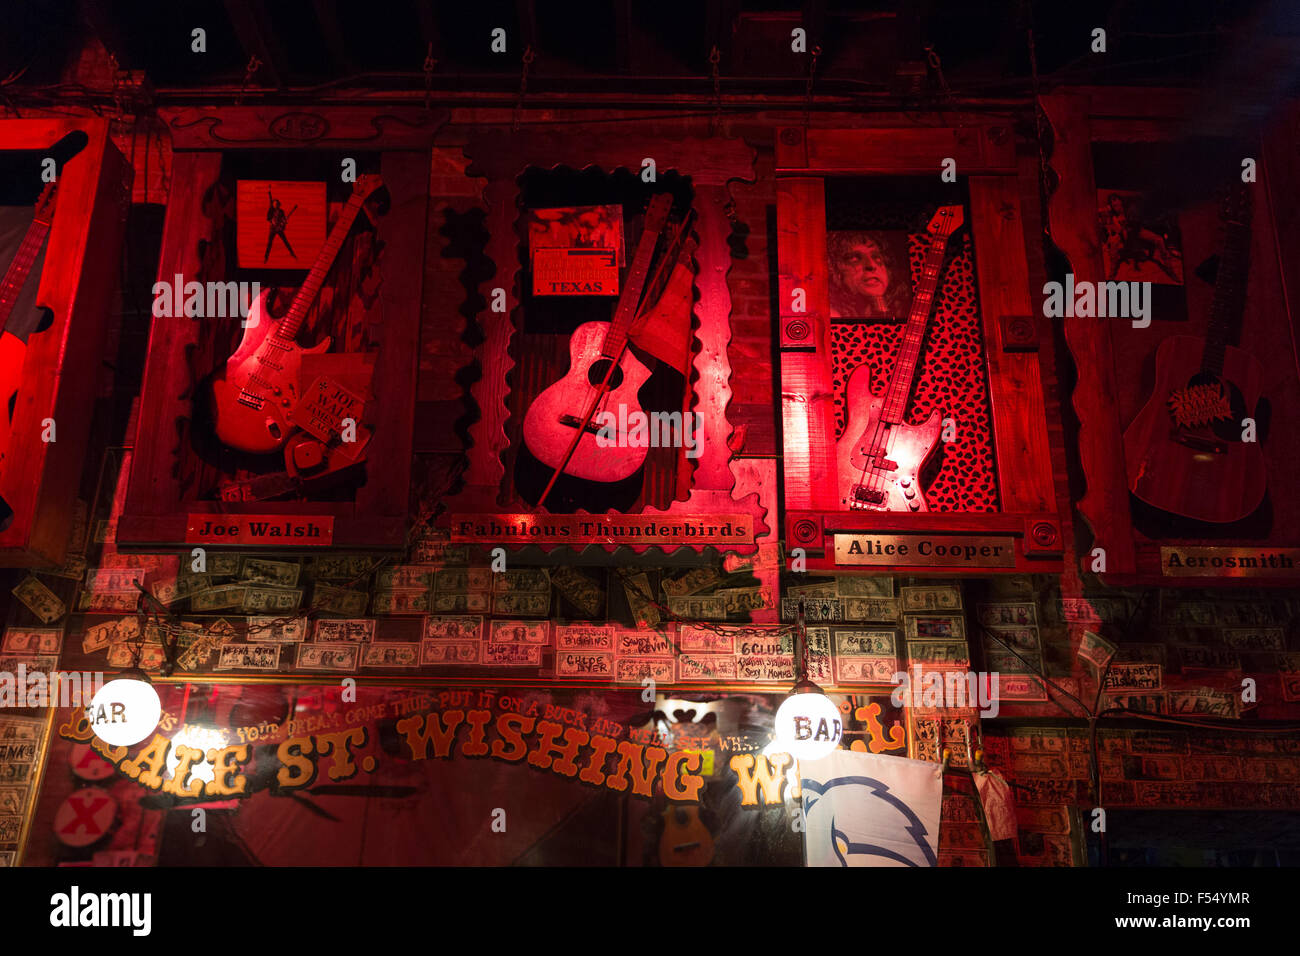 Iconic rock and roll and blues memorabilia in club in Beale Street famous for Rock and Roll and Blues, Memphis - Stock Image